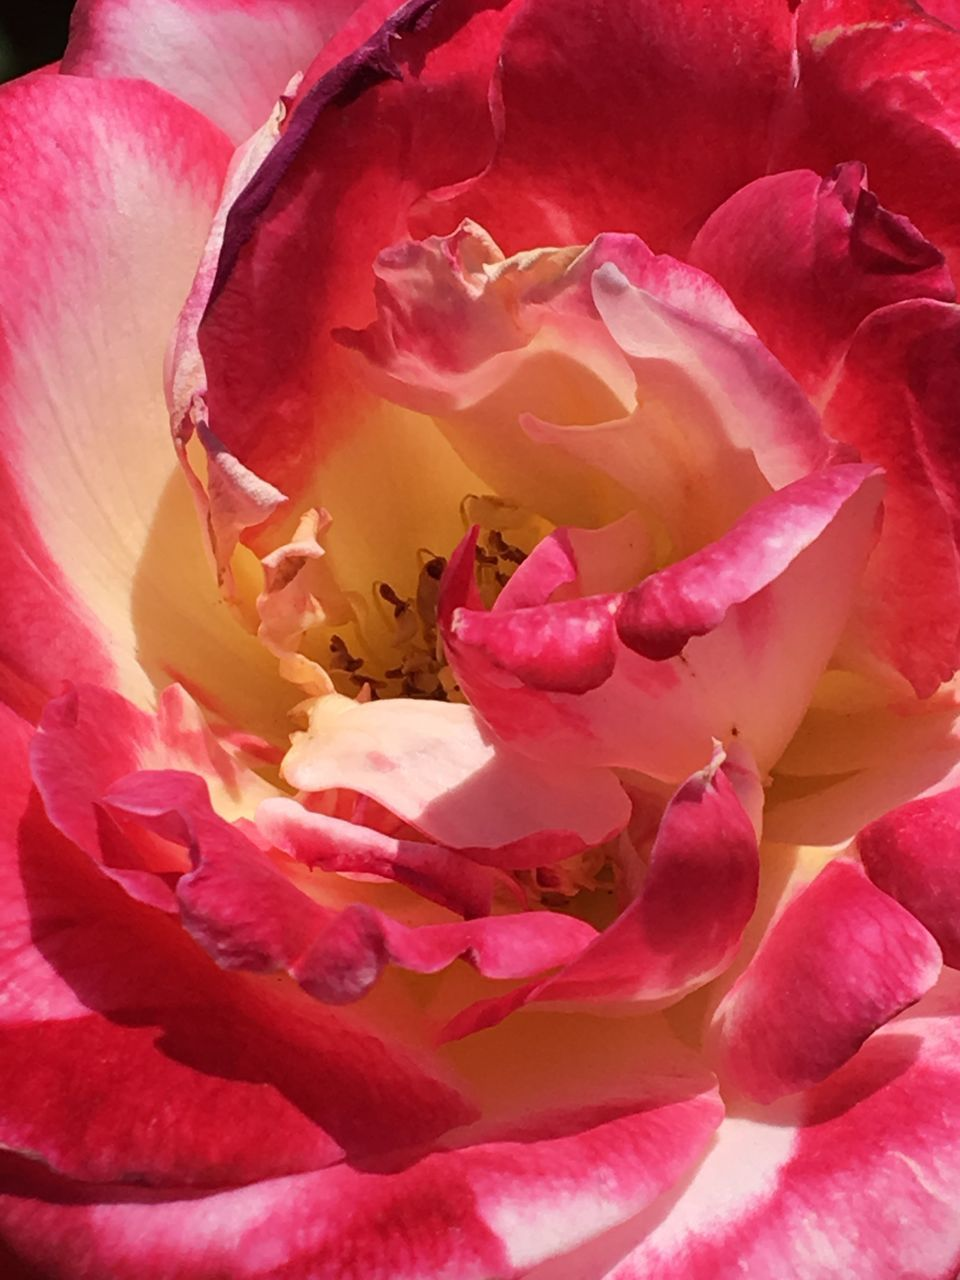 flower, petal, beauty in nature, fragility, nature, rose - flower, full frame, pink color, flower head, backgrounds, no people, freshness, close-up, growth, outdoors, rose petals, day